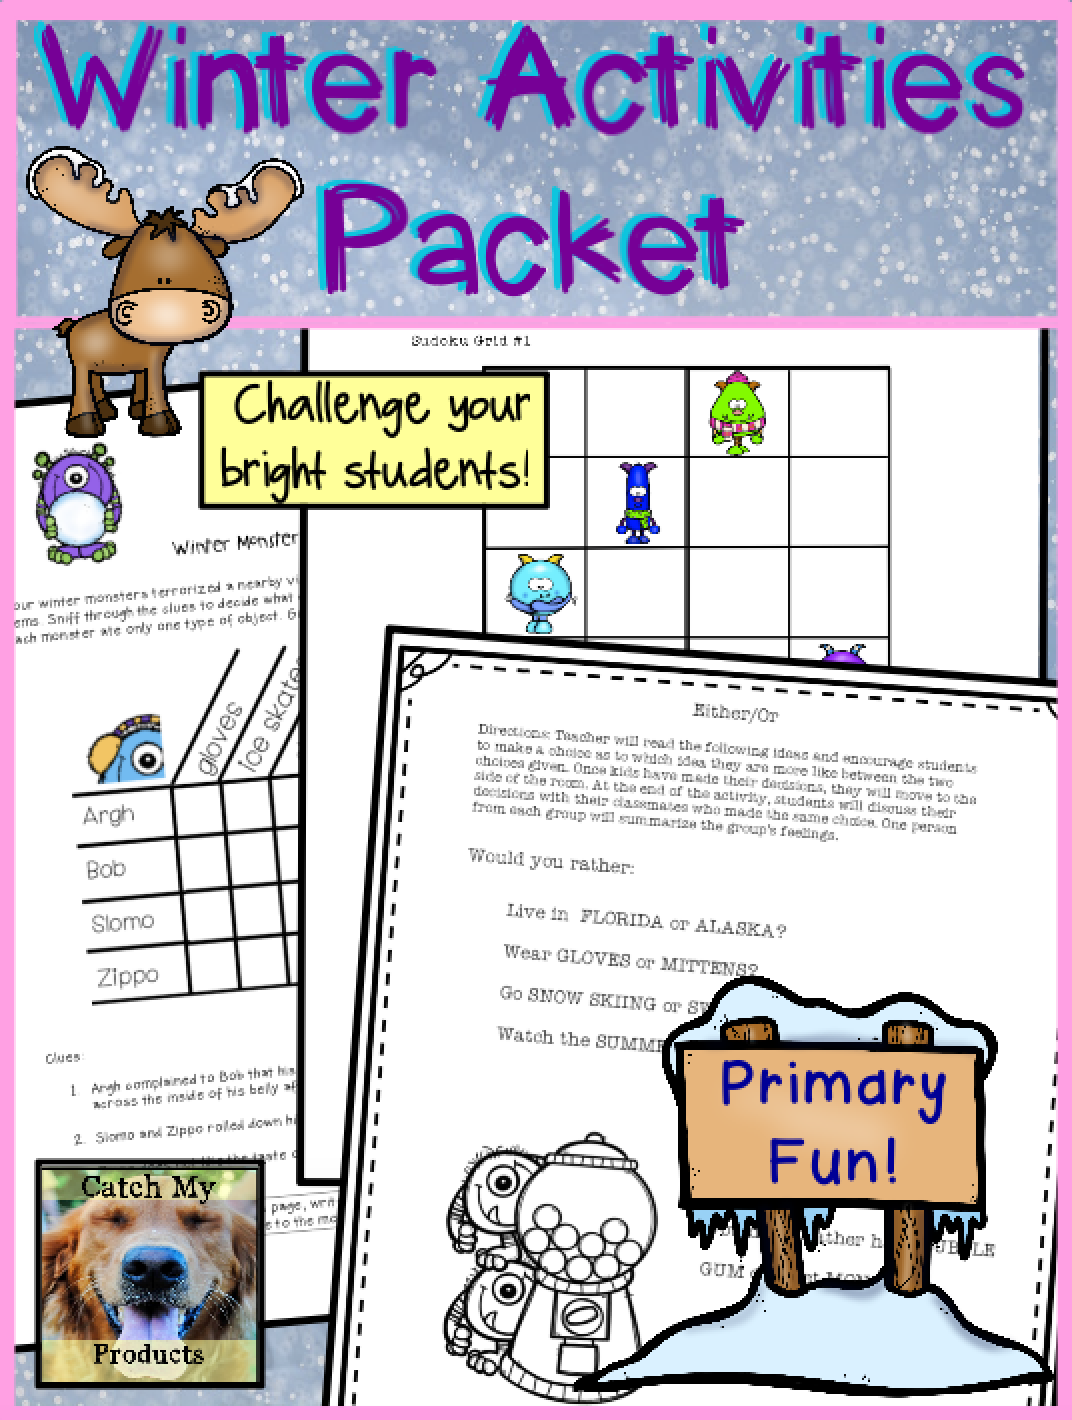 Winter Activities Packet